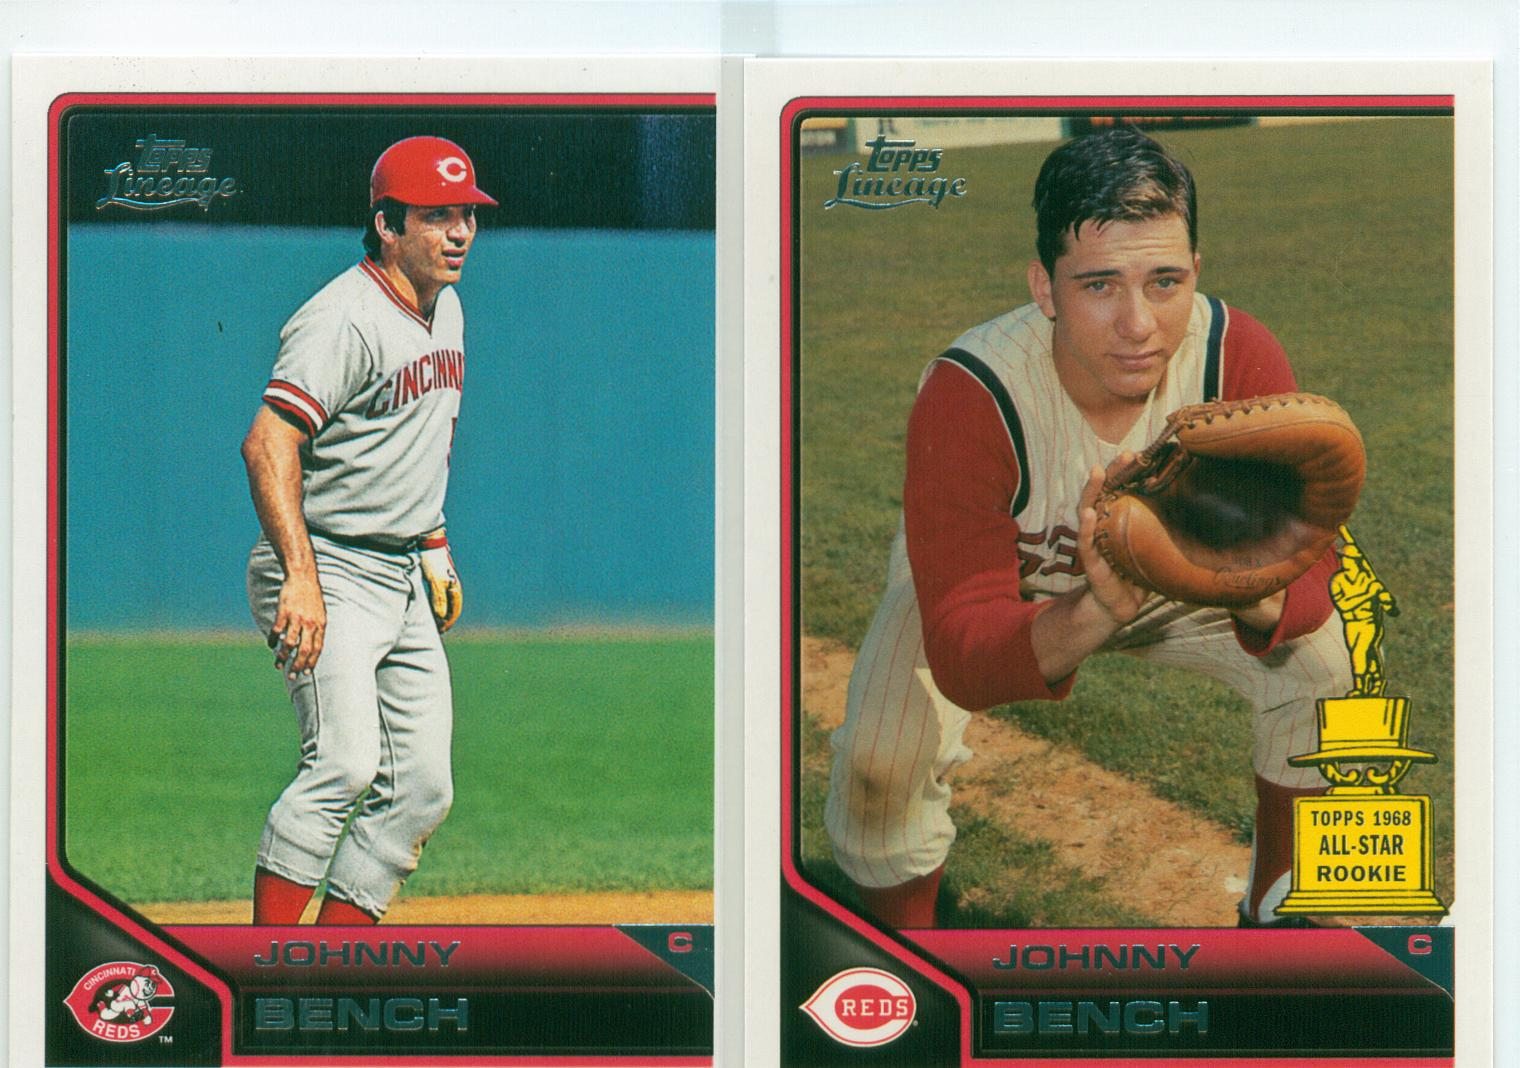 Johnny Bench Collection 30 Year Old Cardboard Page 14